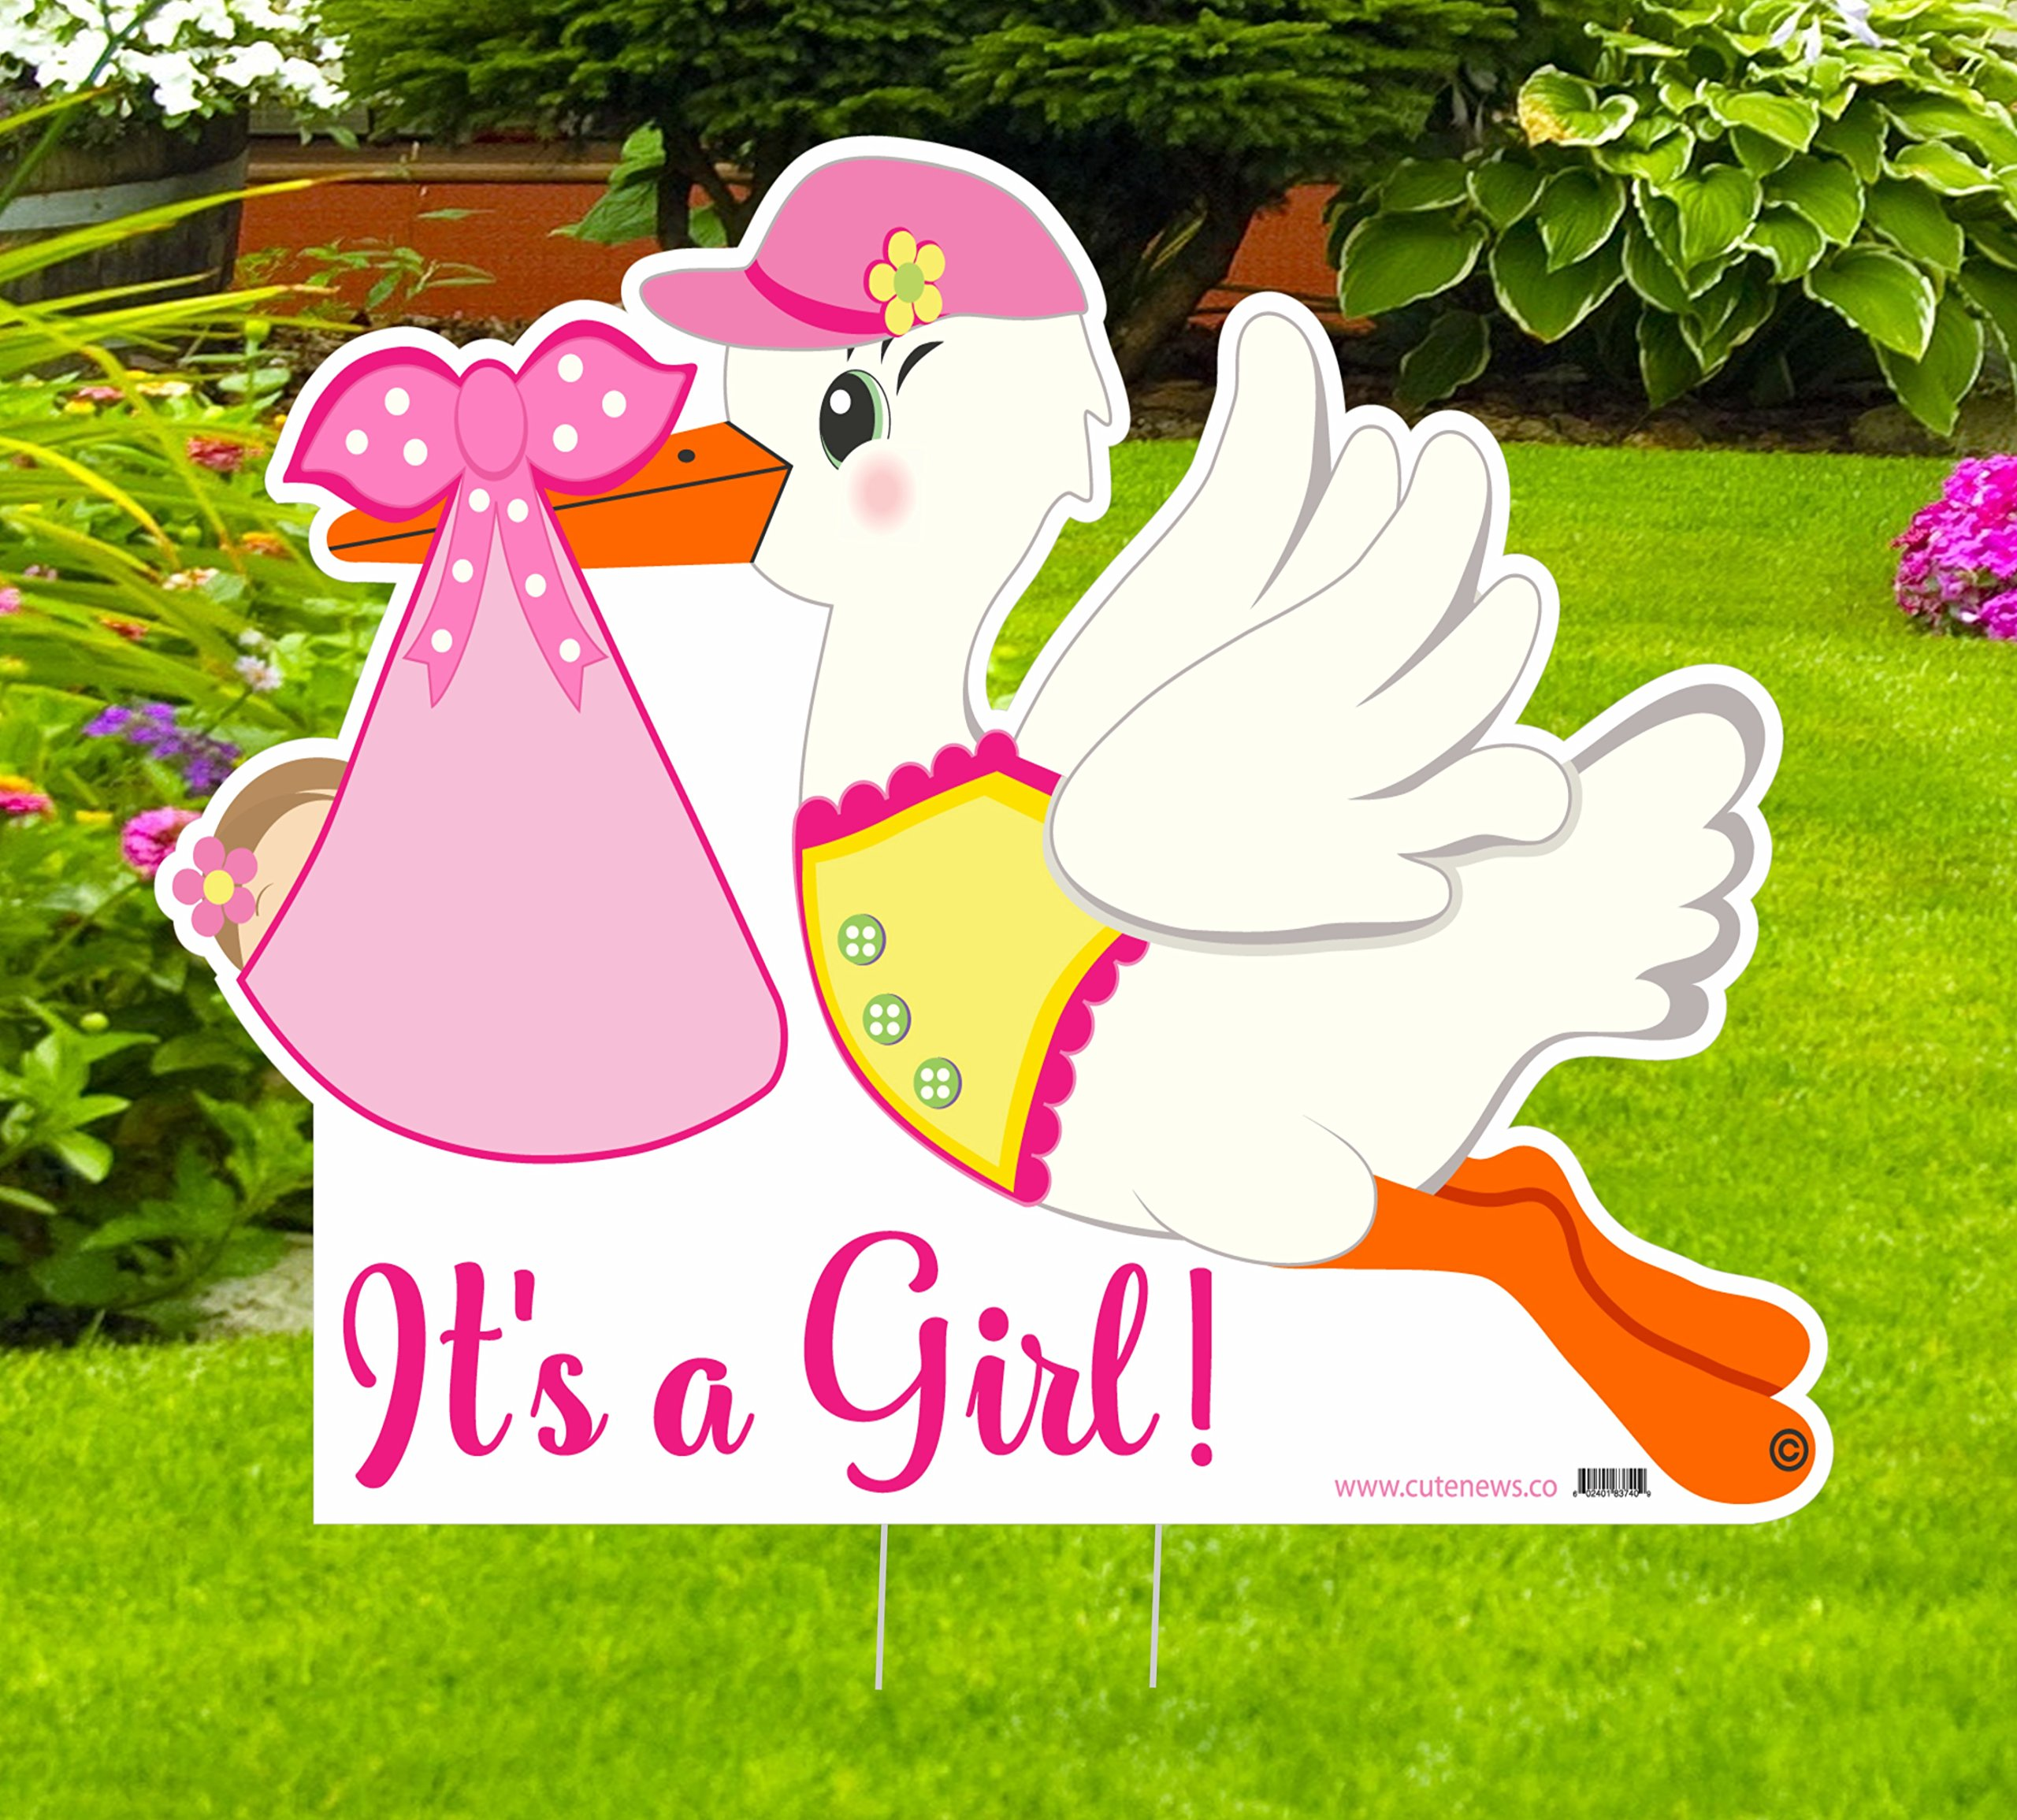 It's a Girl Stork Yard Sign - Welcome Home Newborn Baby Lawn Announcement - Baby Shower Party Pink Decoration